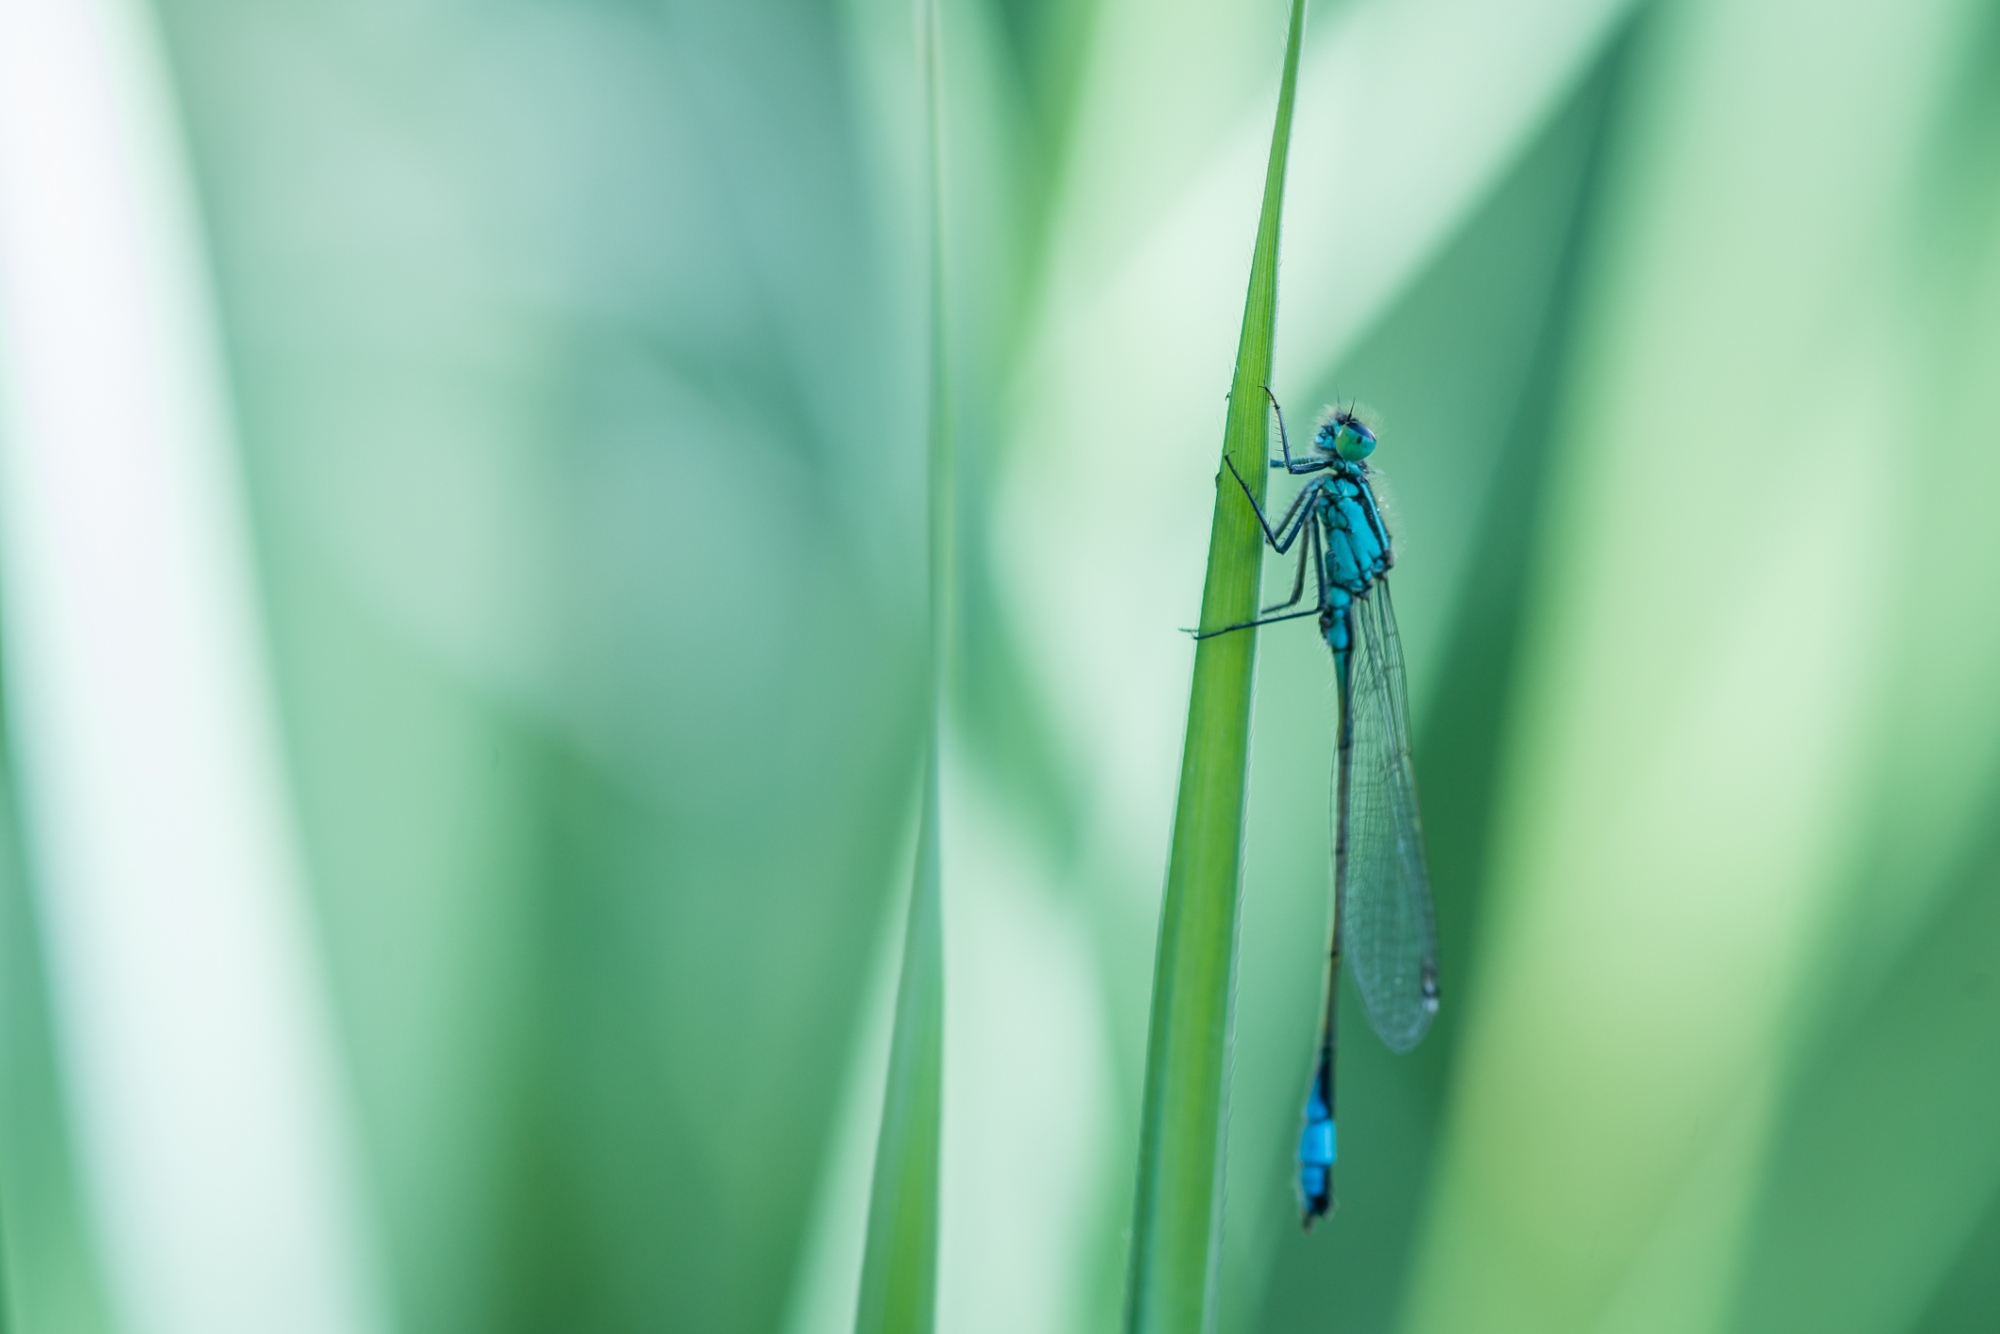 Libelle, insect, macrofotografie, macro, close-up, blauw, groen